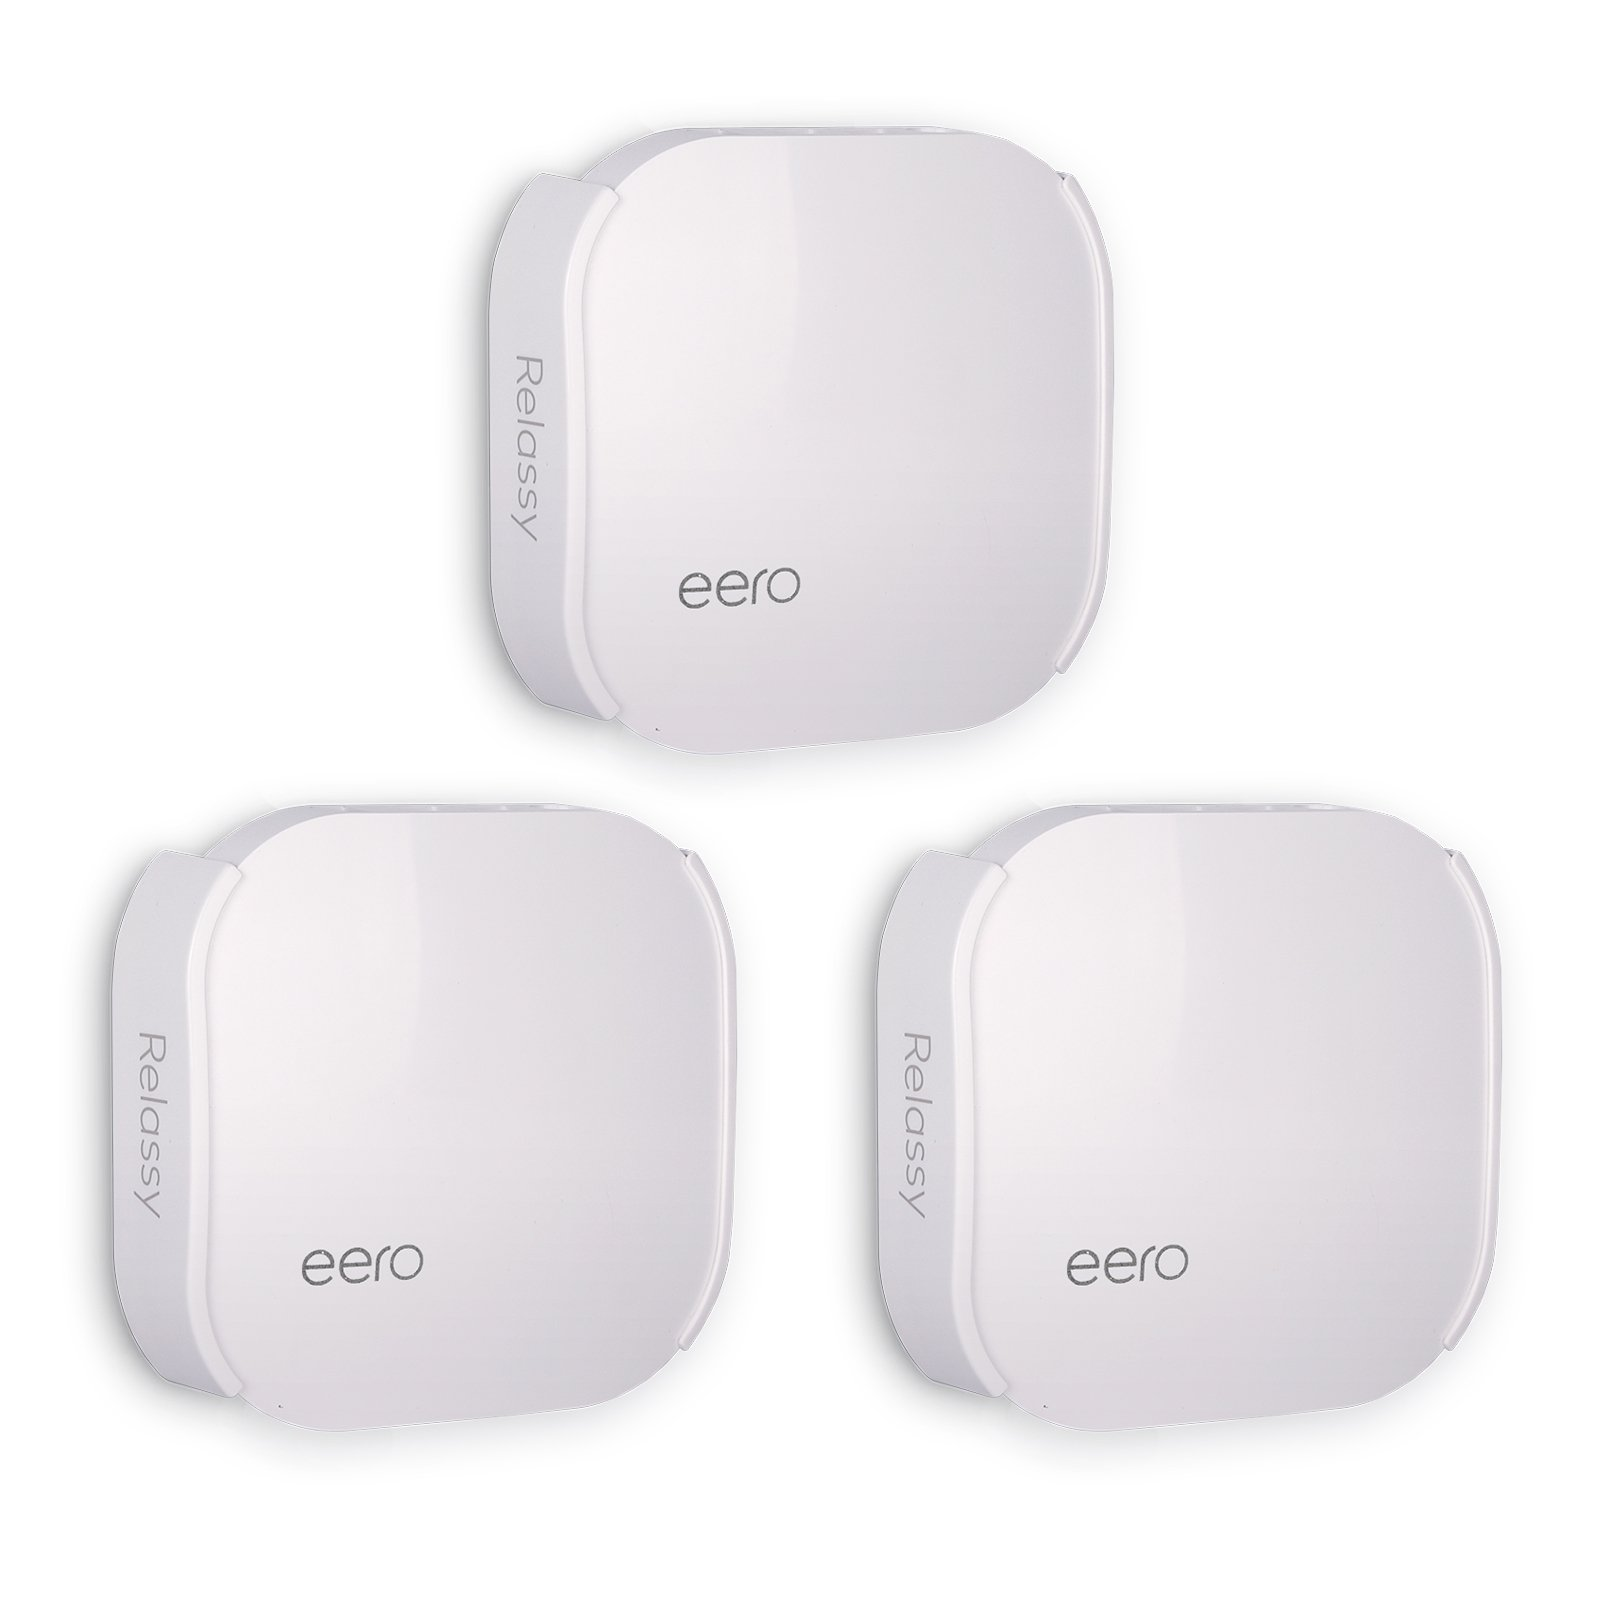 Wall Mount Compatible with EERO WiFi pro (3 Pack) Relassy Wall Mount Bracket Ceiling Holder Compatible with eero WiFi,White[2018 Upgraded]